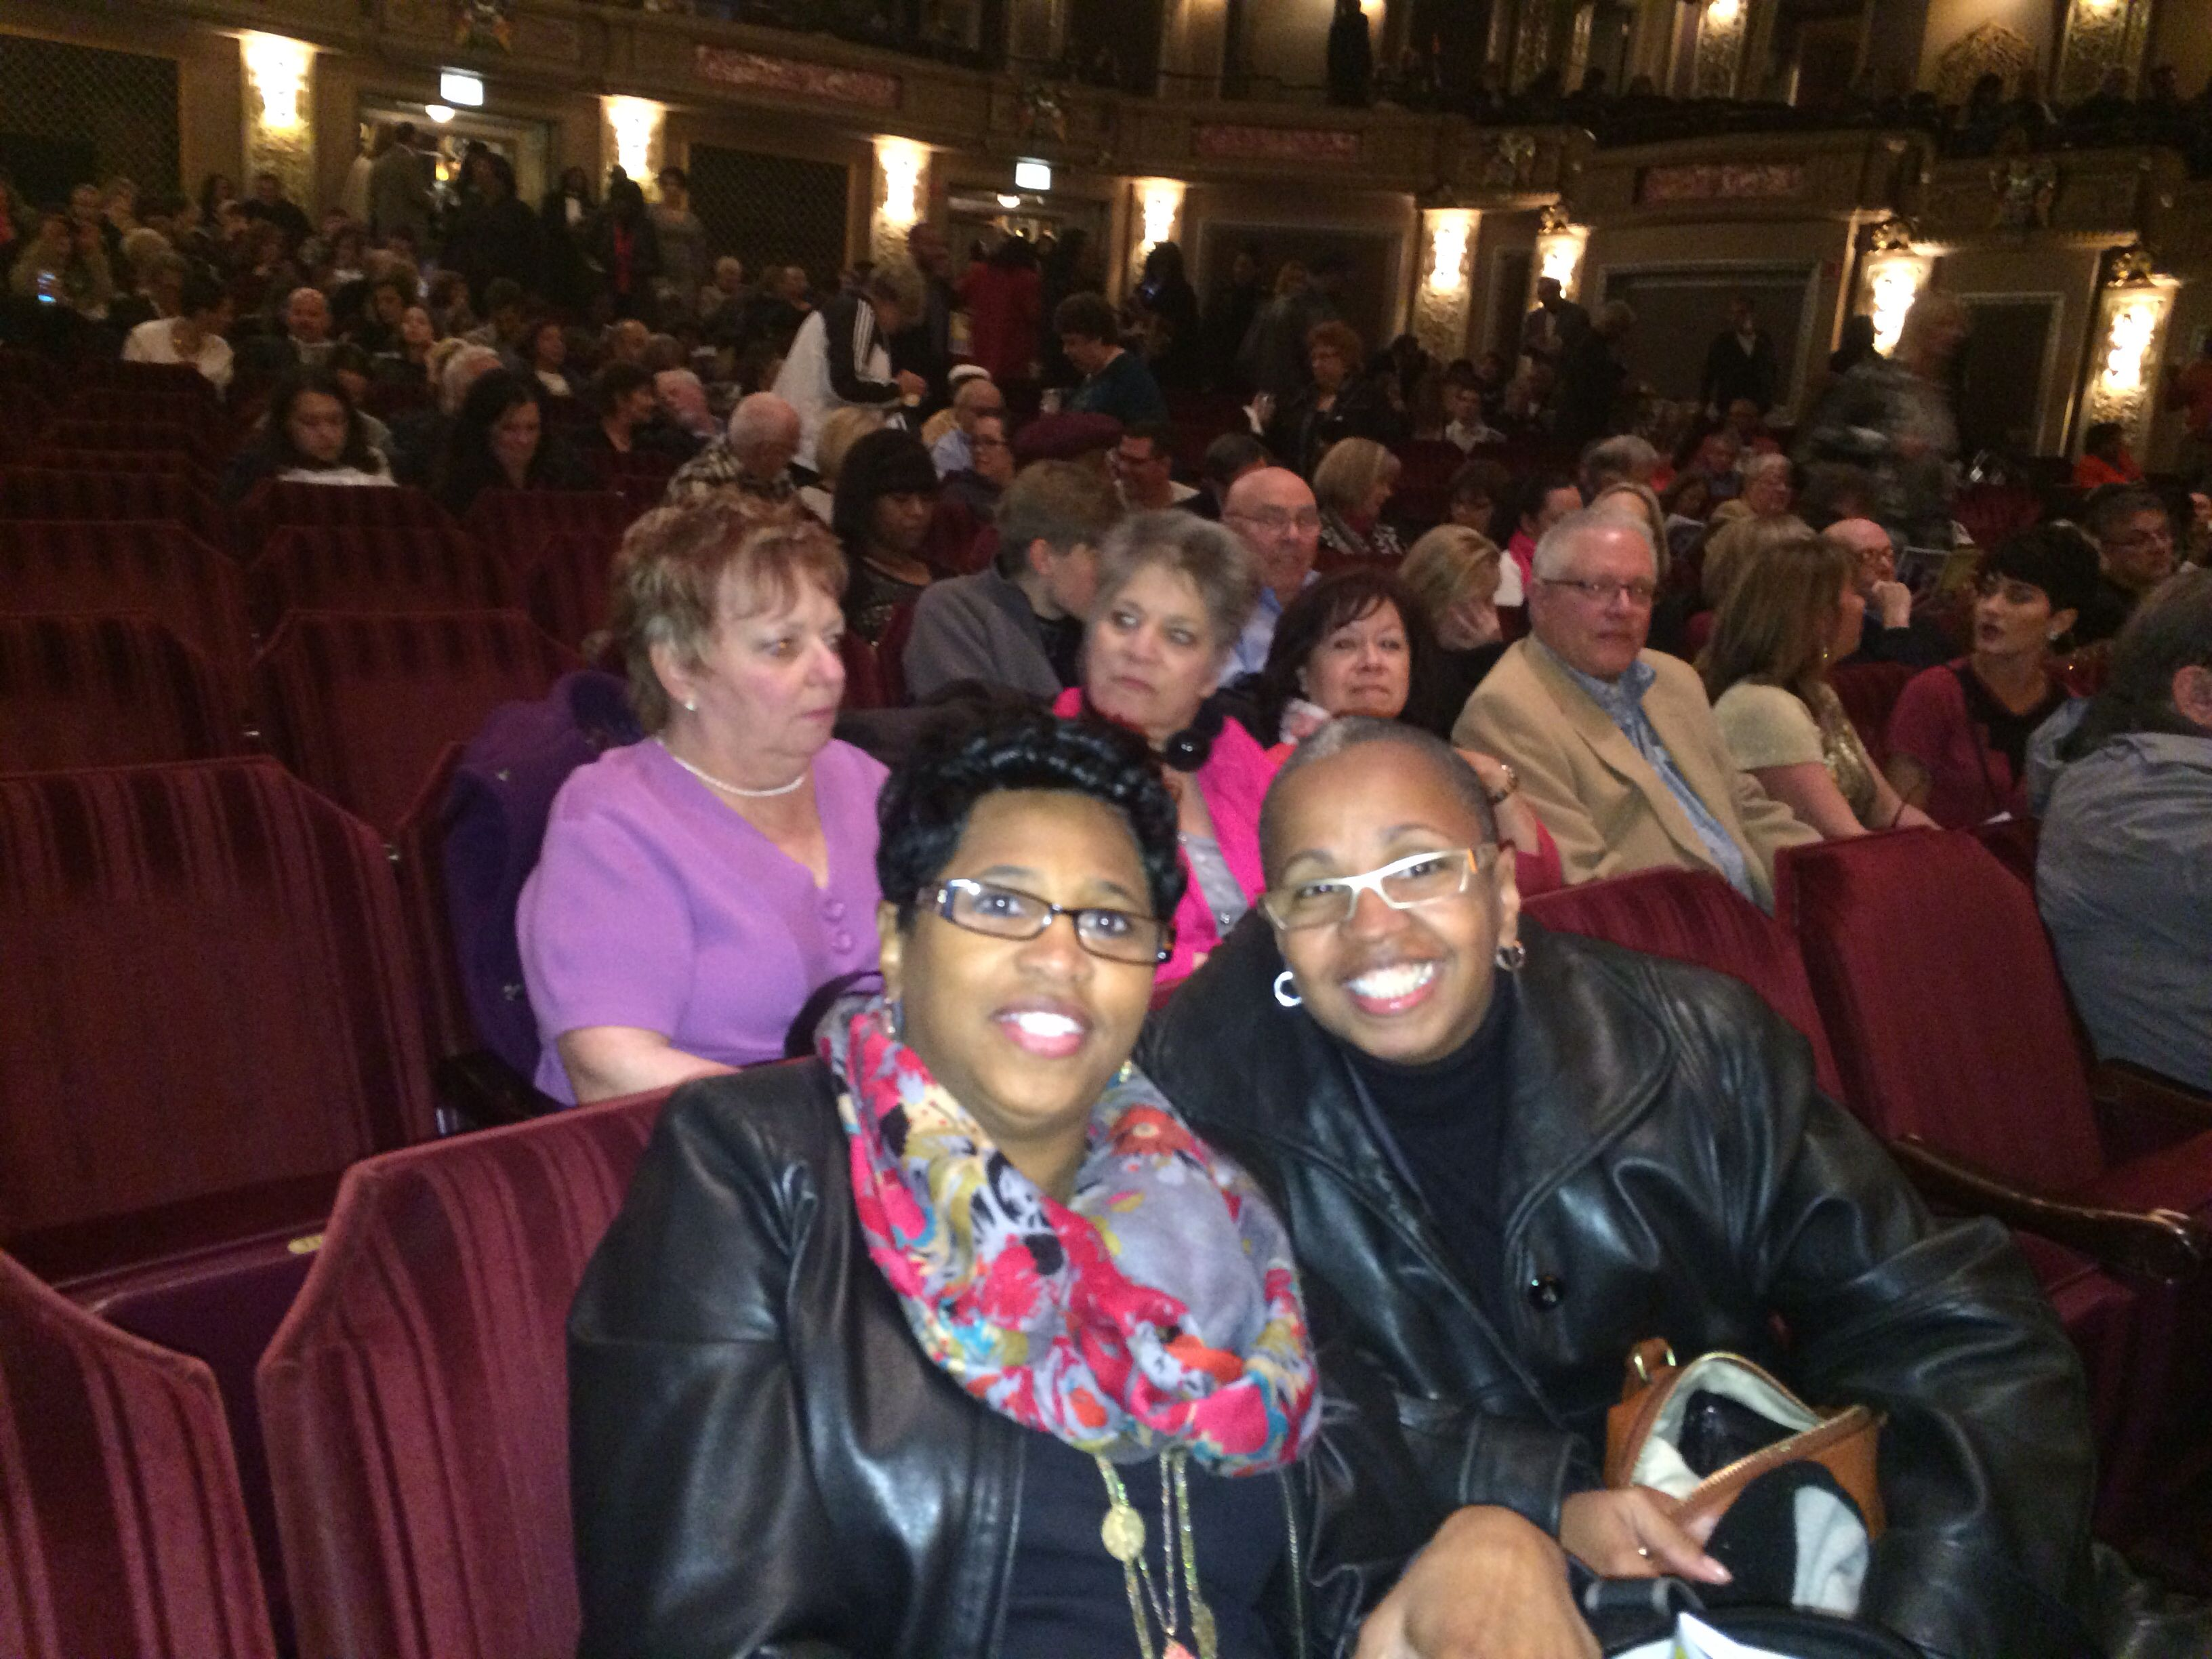 My sister Cathy & I at Motown the Musical-Chicago,IL. What a blast!! My Sista is amazing!!#luvmysista